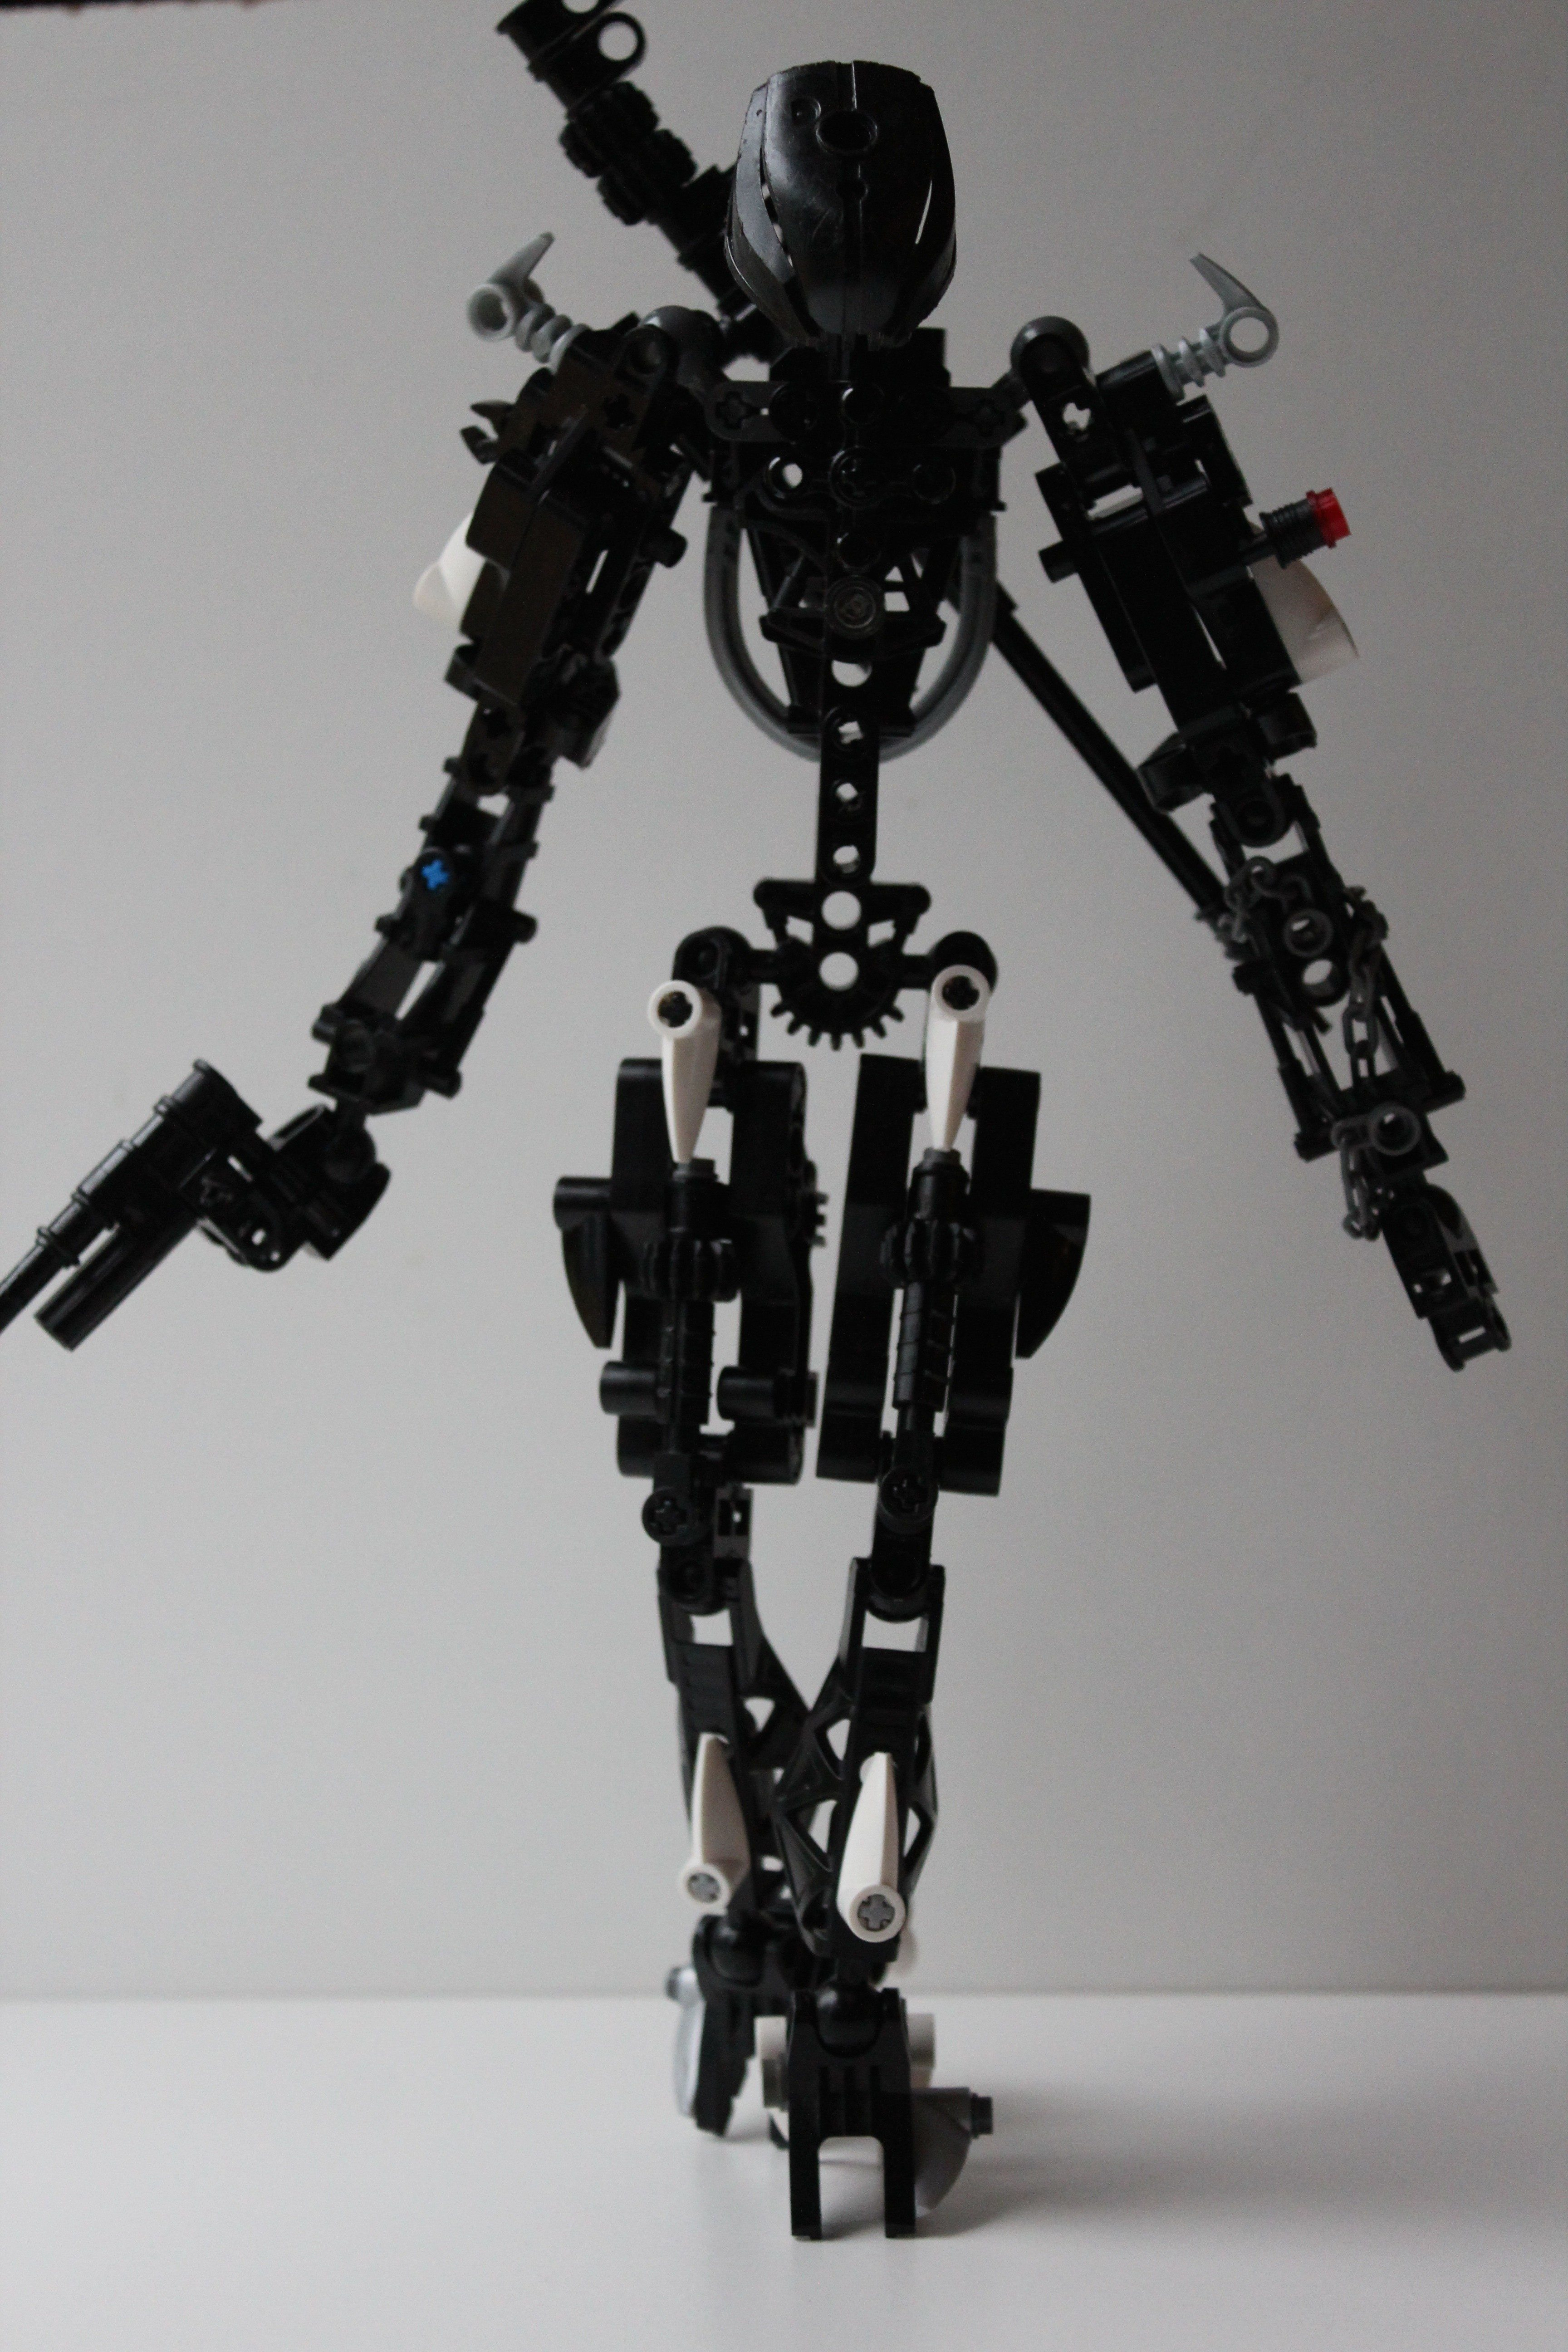 First Proper Moc Dark Umbra It S Meant To Be Generic Lego Creations The Ttv Message Boards Patches darkumbra.net to remove the need to disable your adblocker to view posted links. the ttv message boards